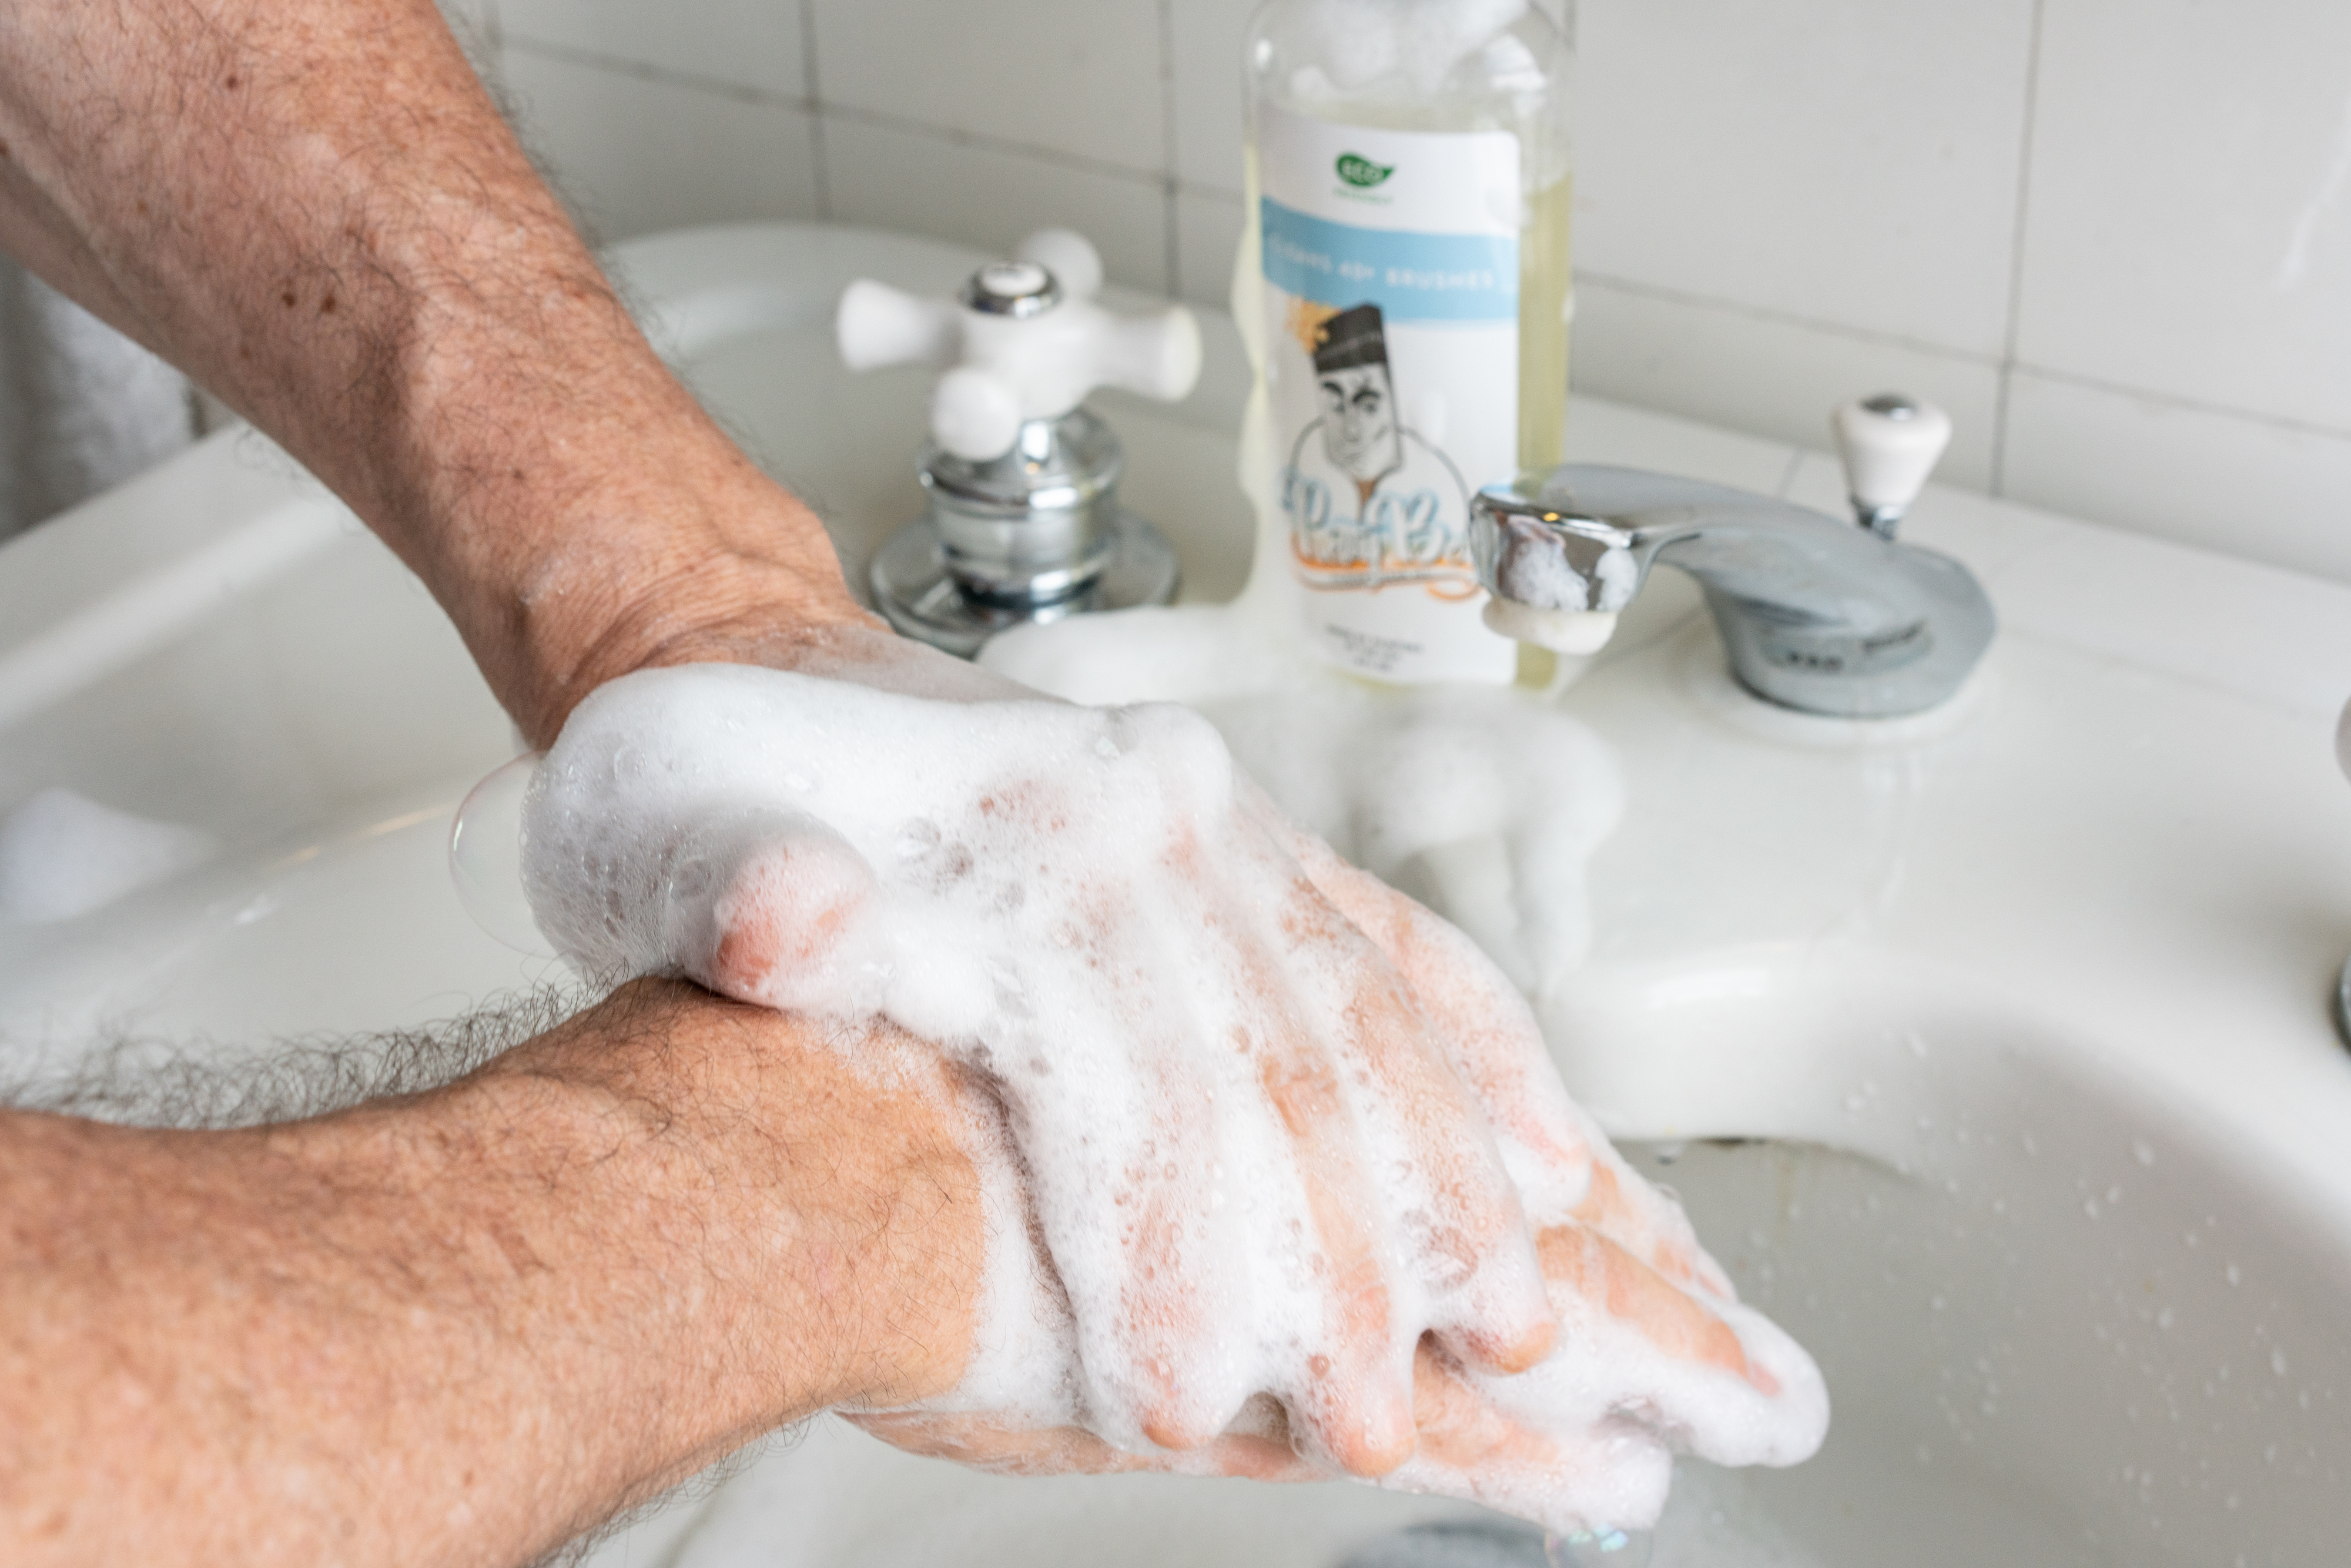 Pretty Boy cleaning hands after painting Gentle on skin